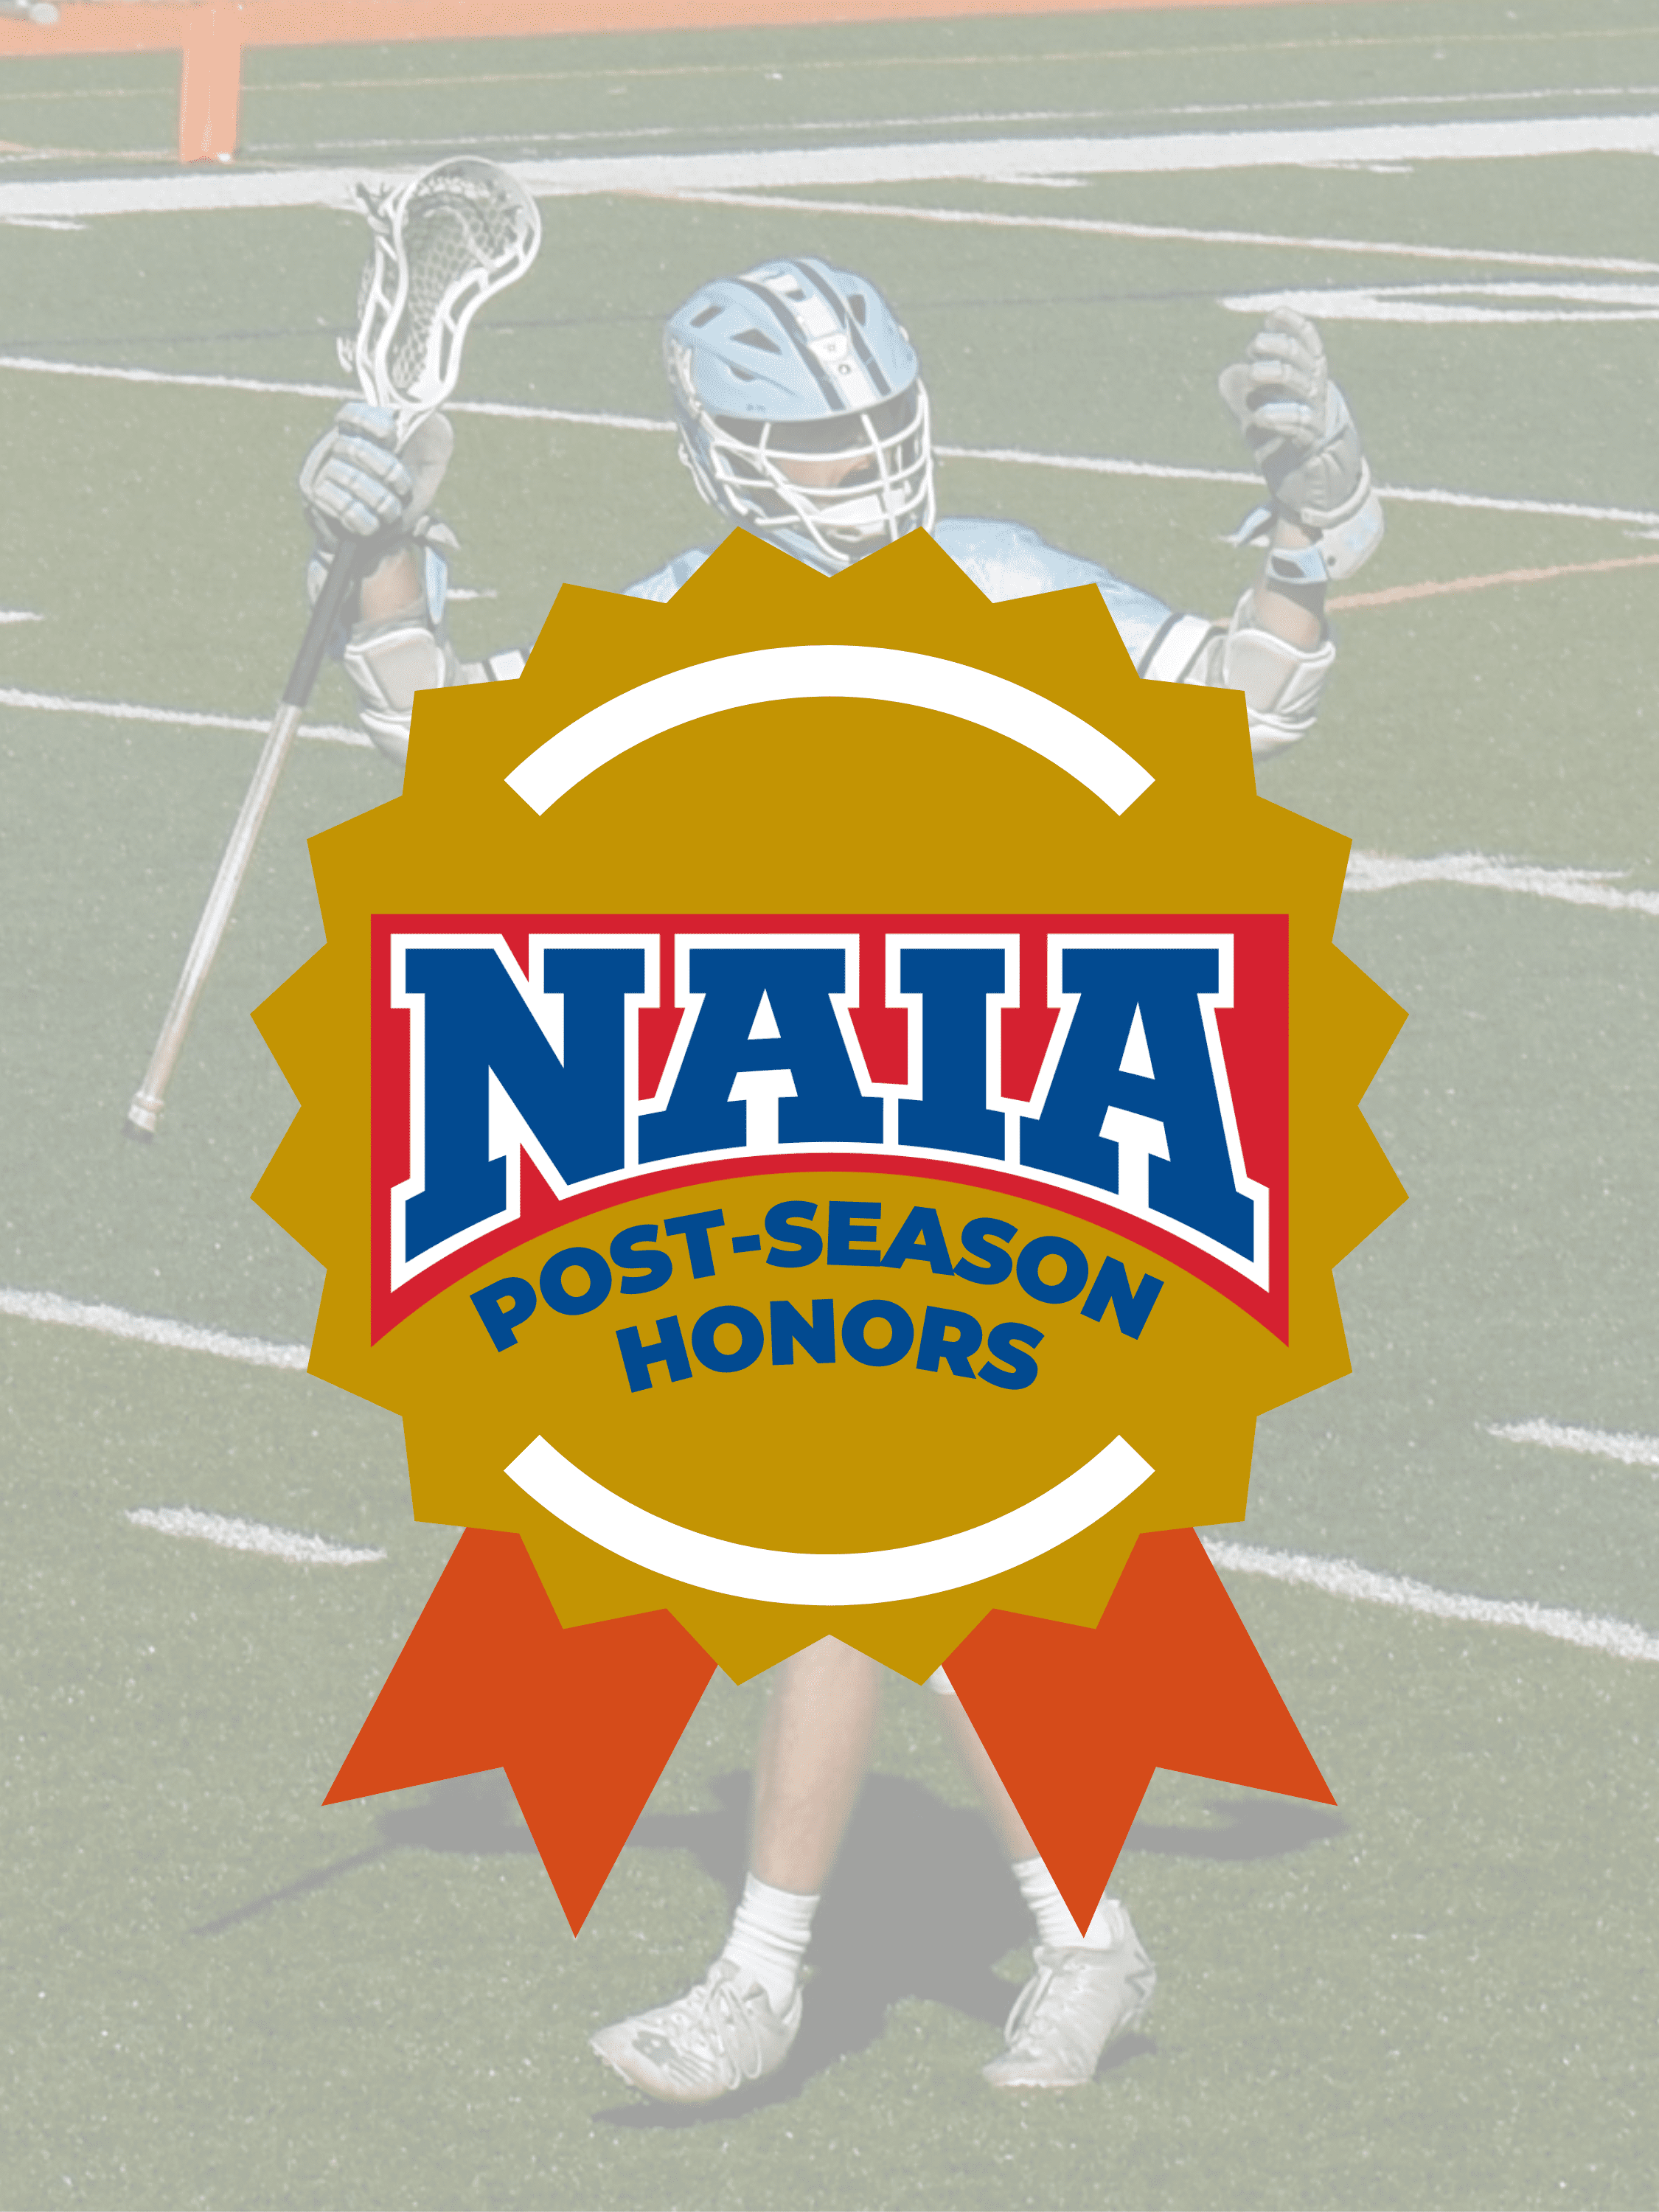 Postseason NAIA men's awards